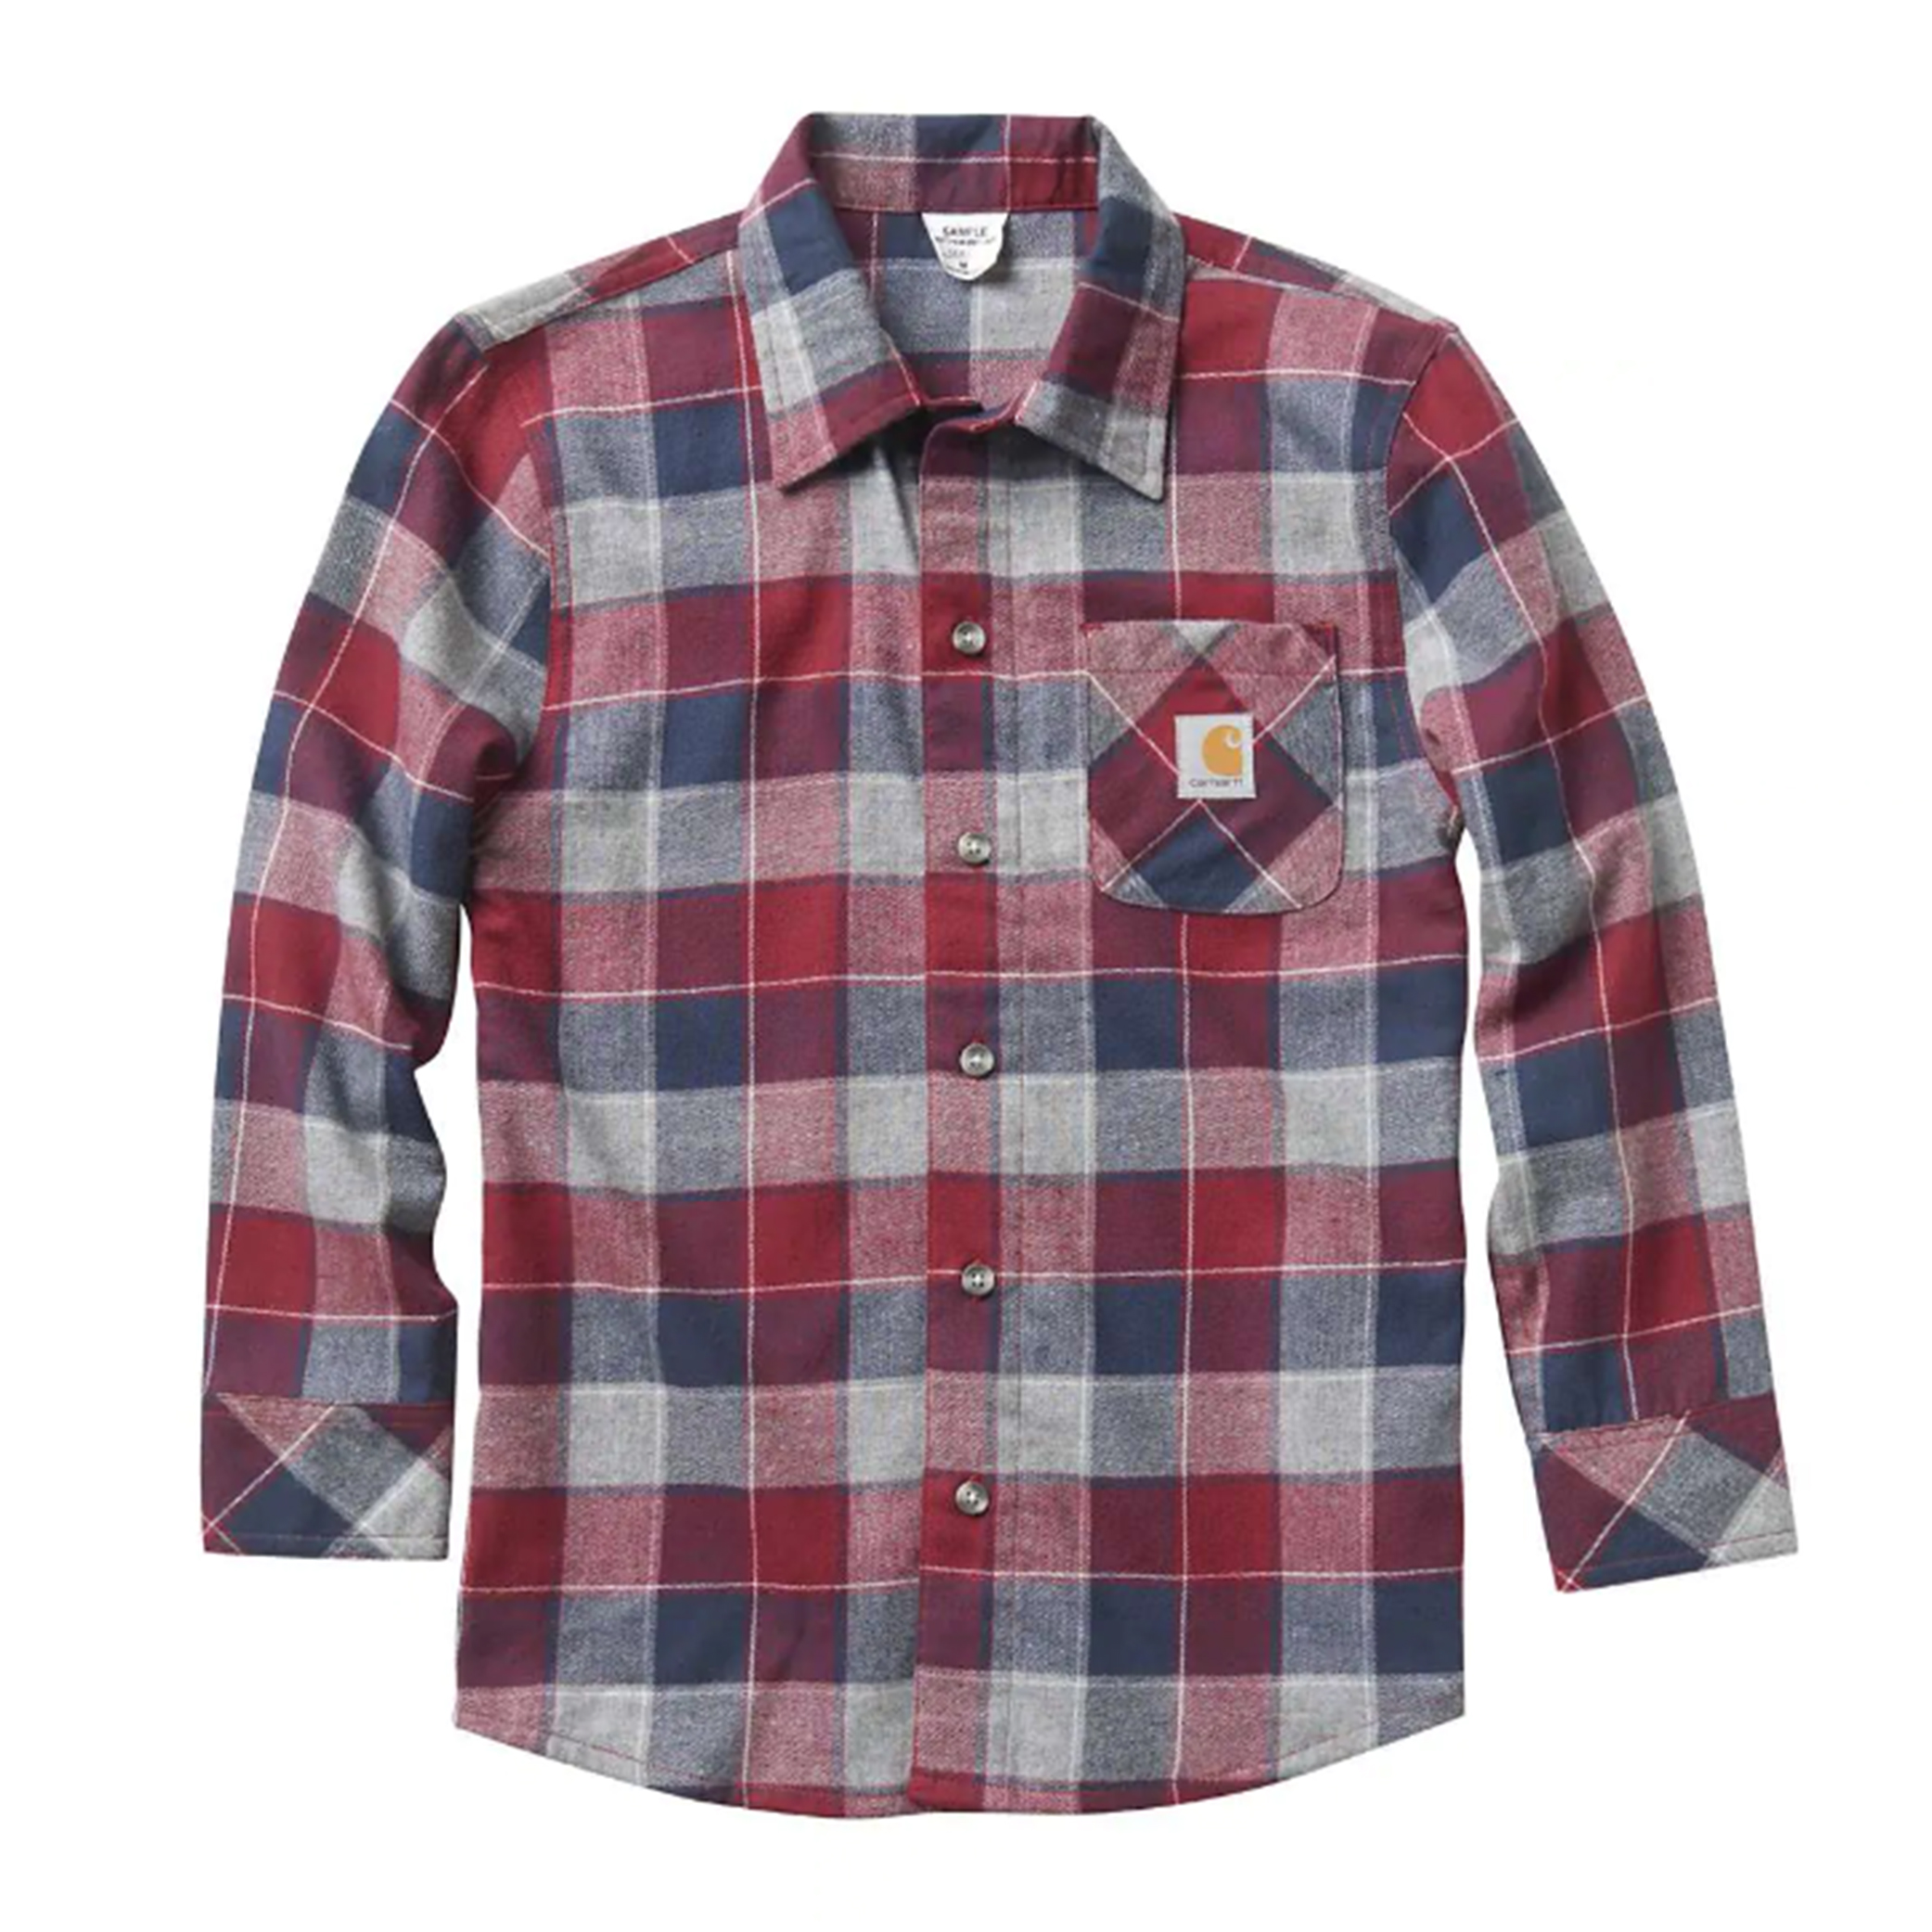 Boy's Long Sleeve Plaid Shirt, Red/Blue, swatch